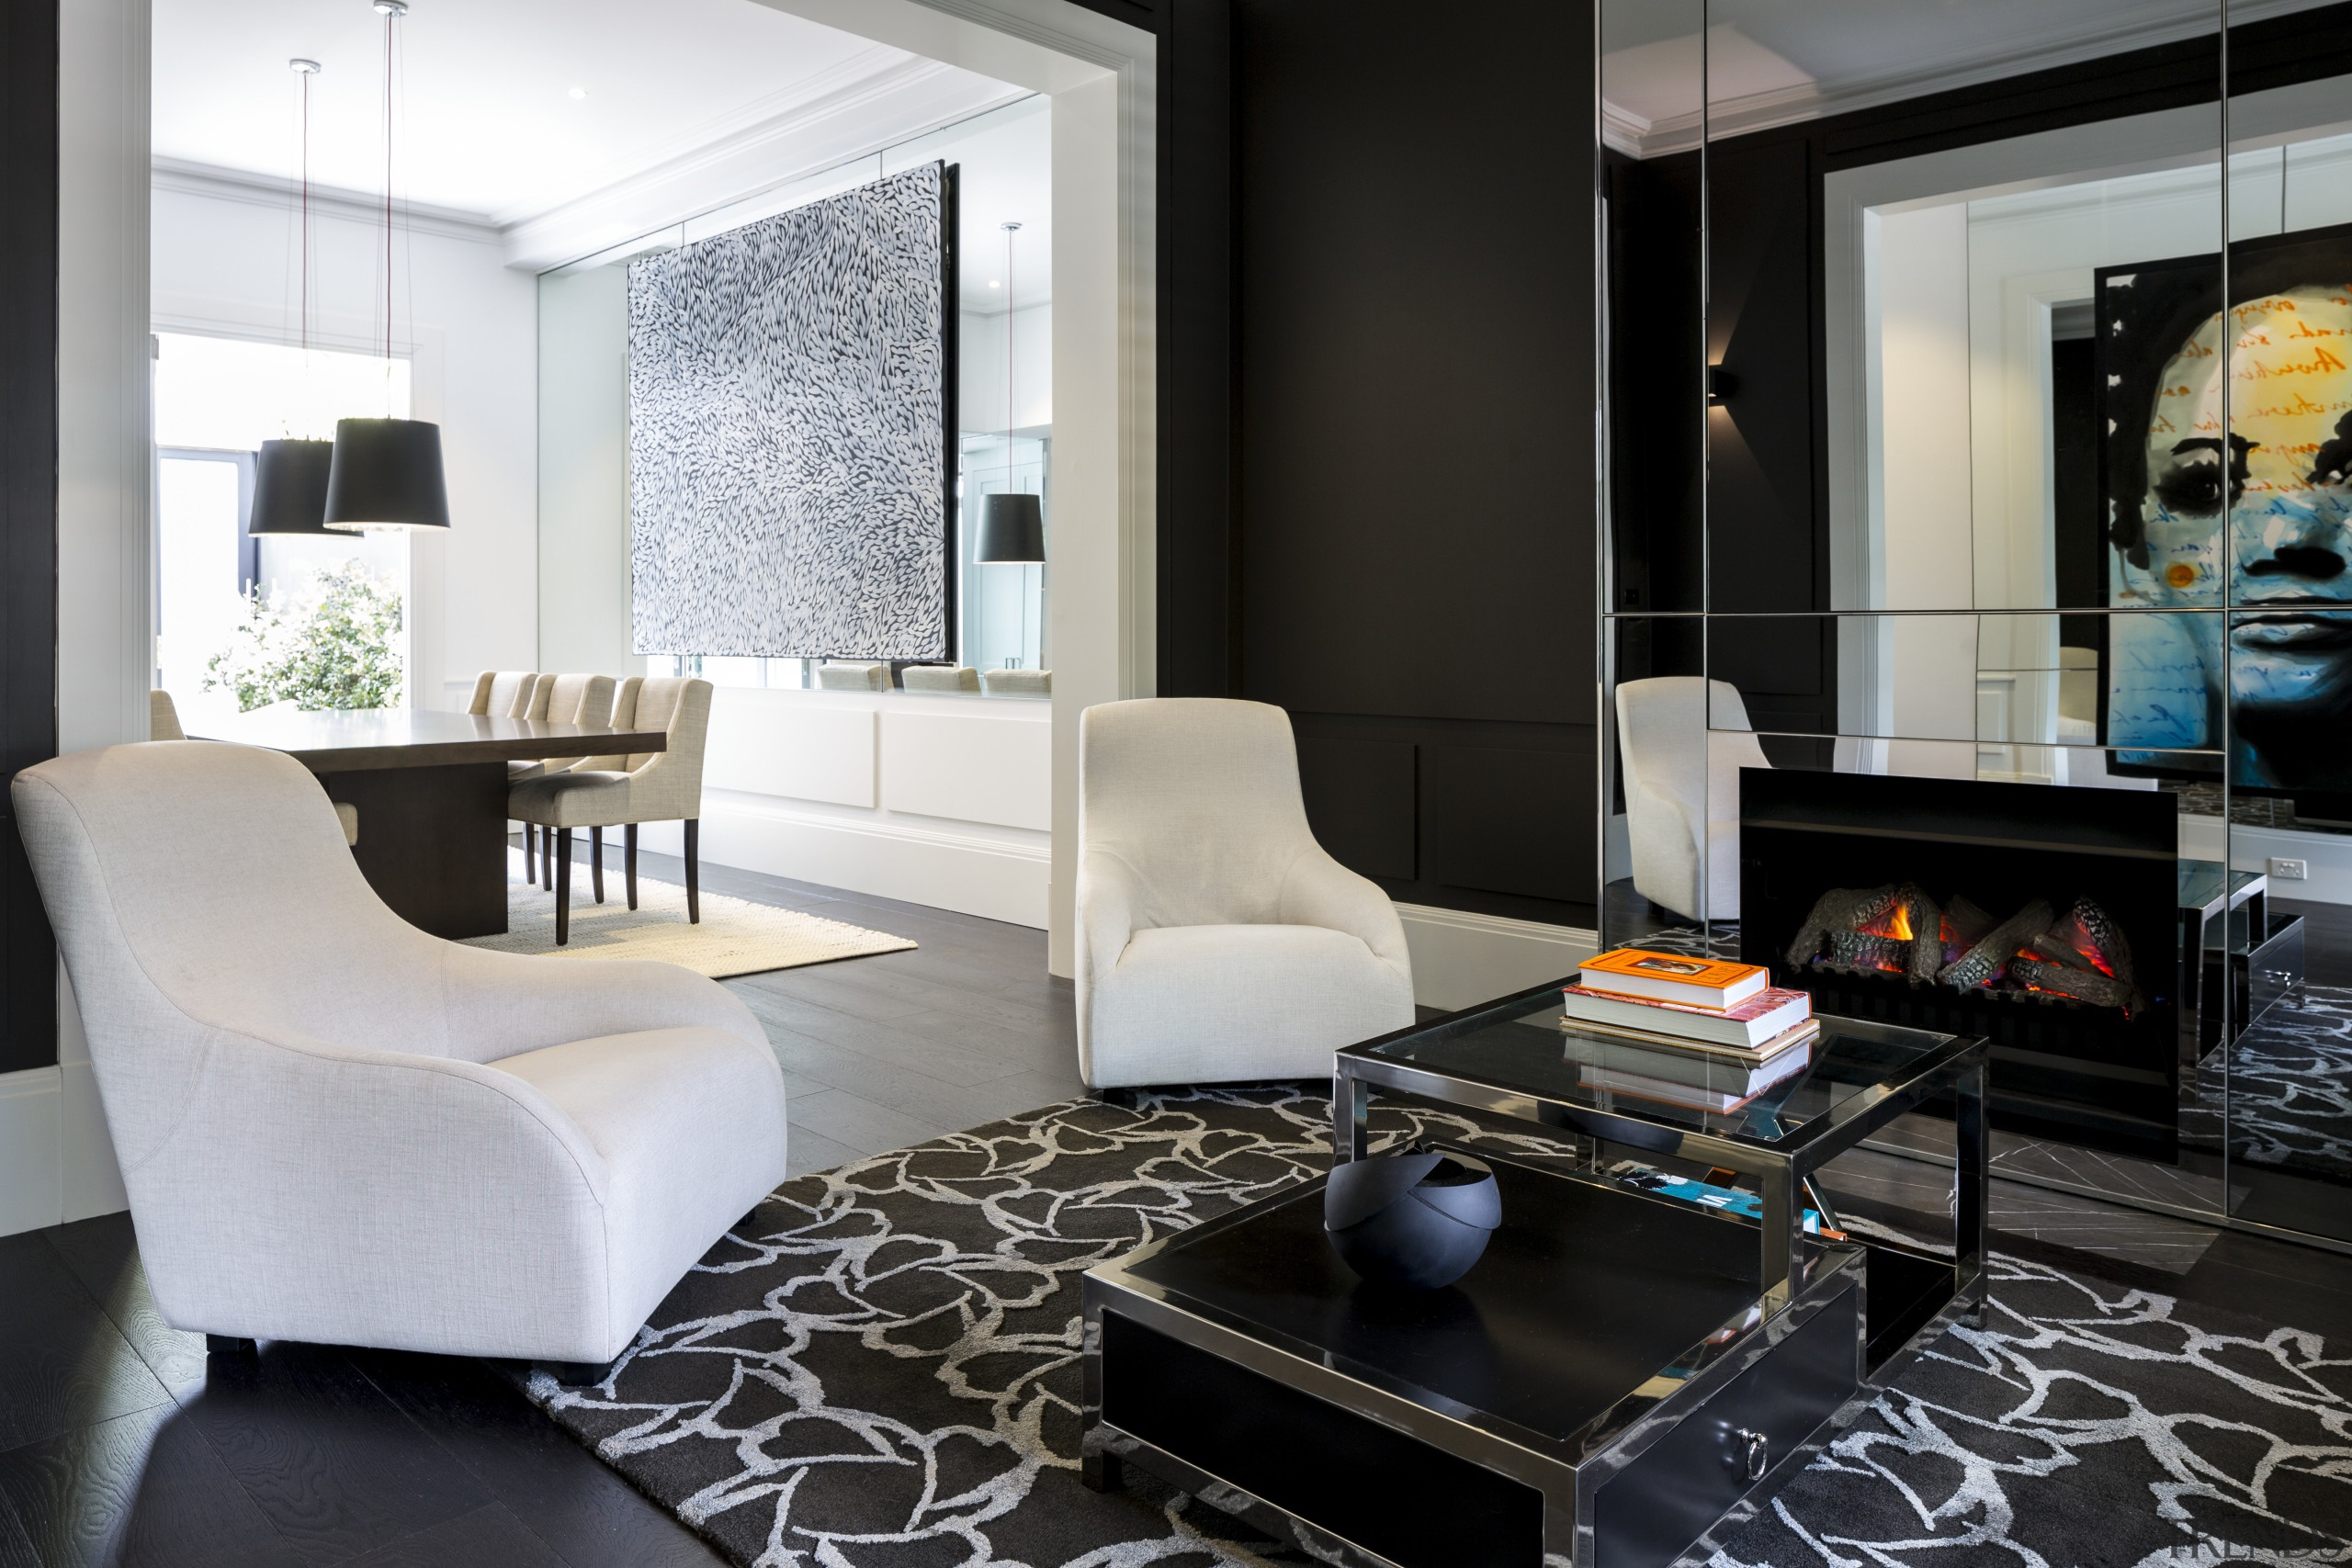 Black living room walls, stained oak floors and furniture, interior design, living room, room, table, black, white